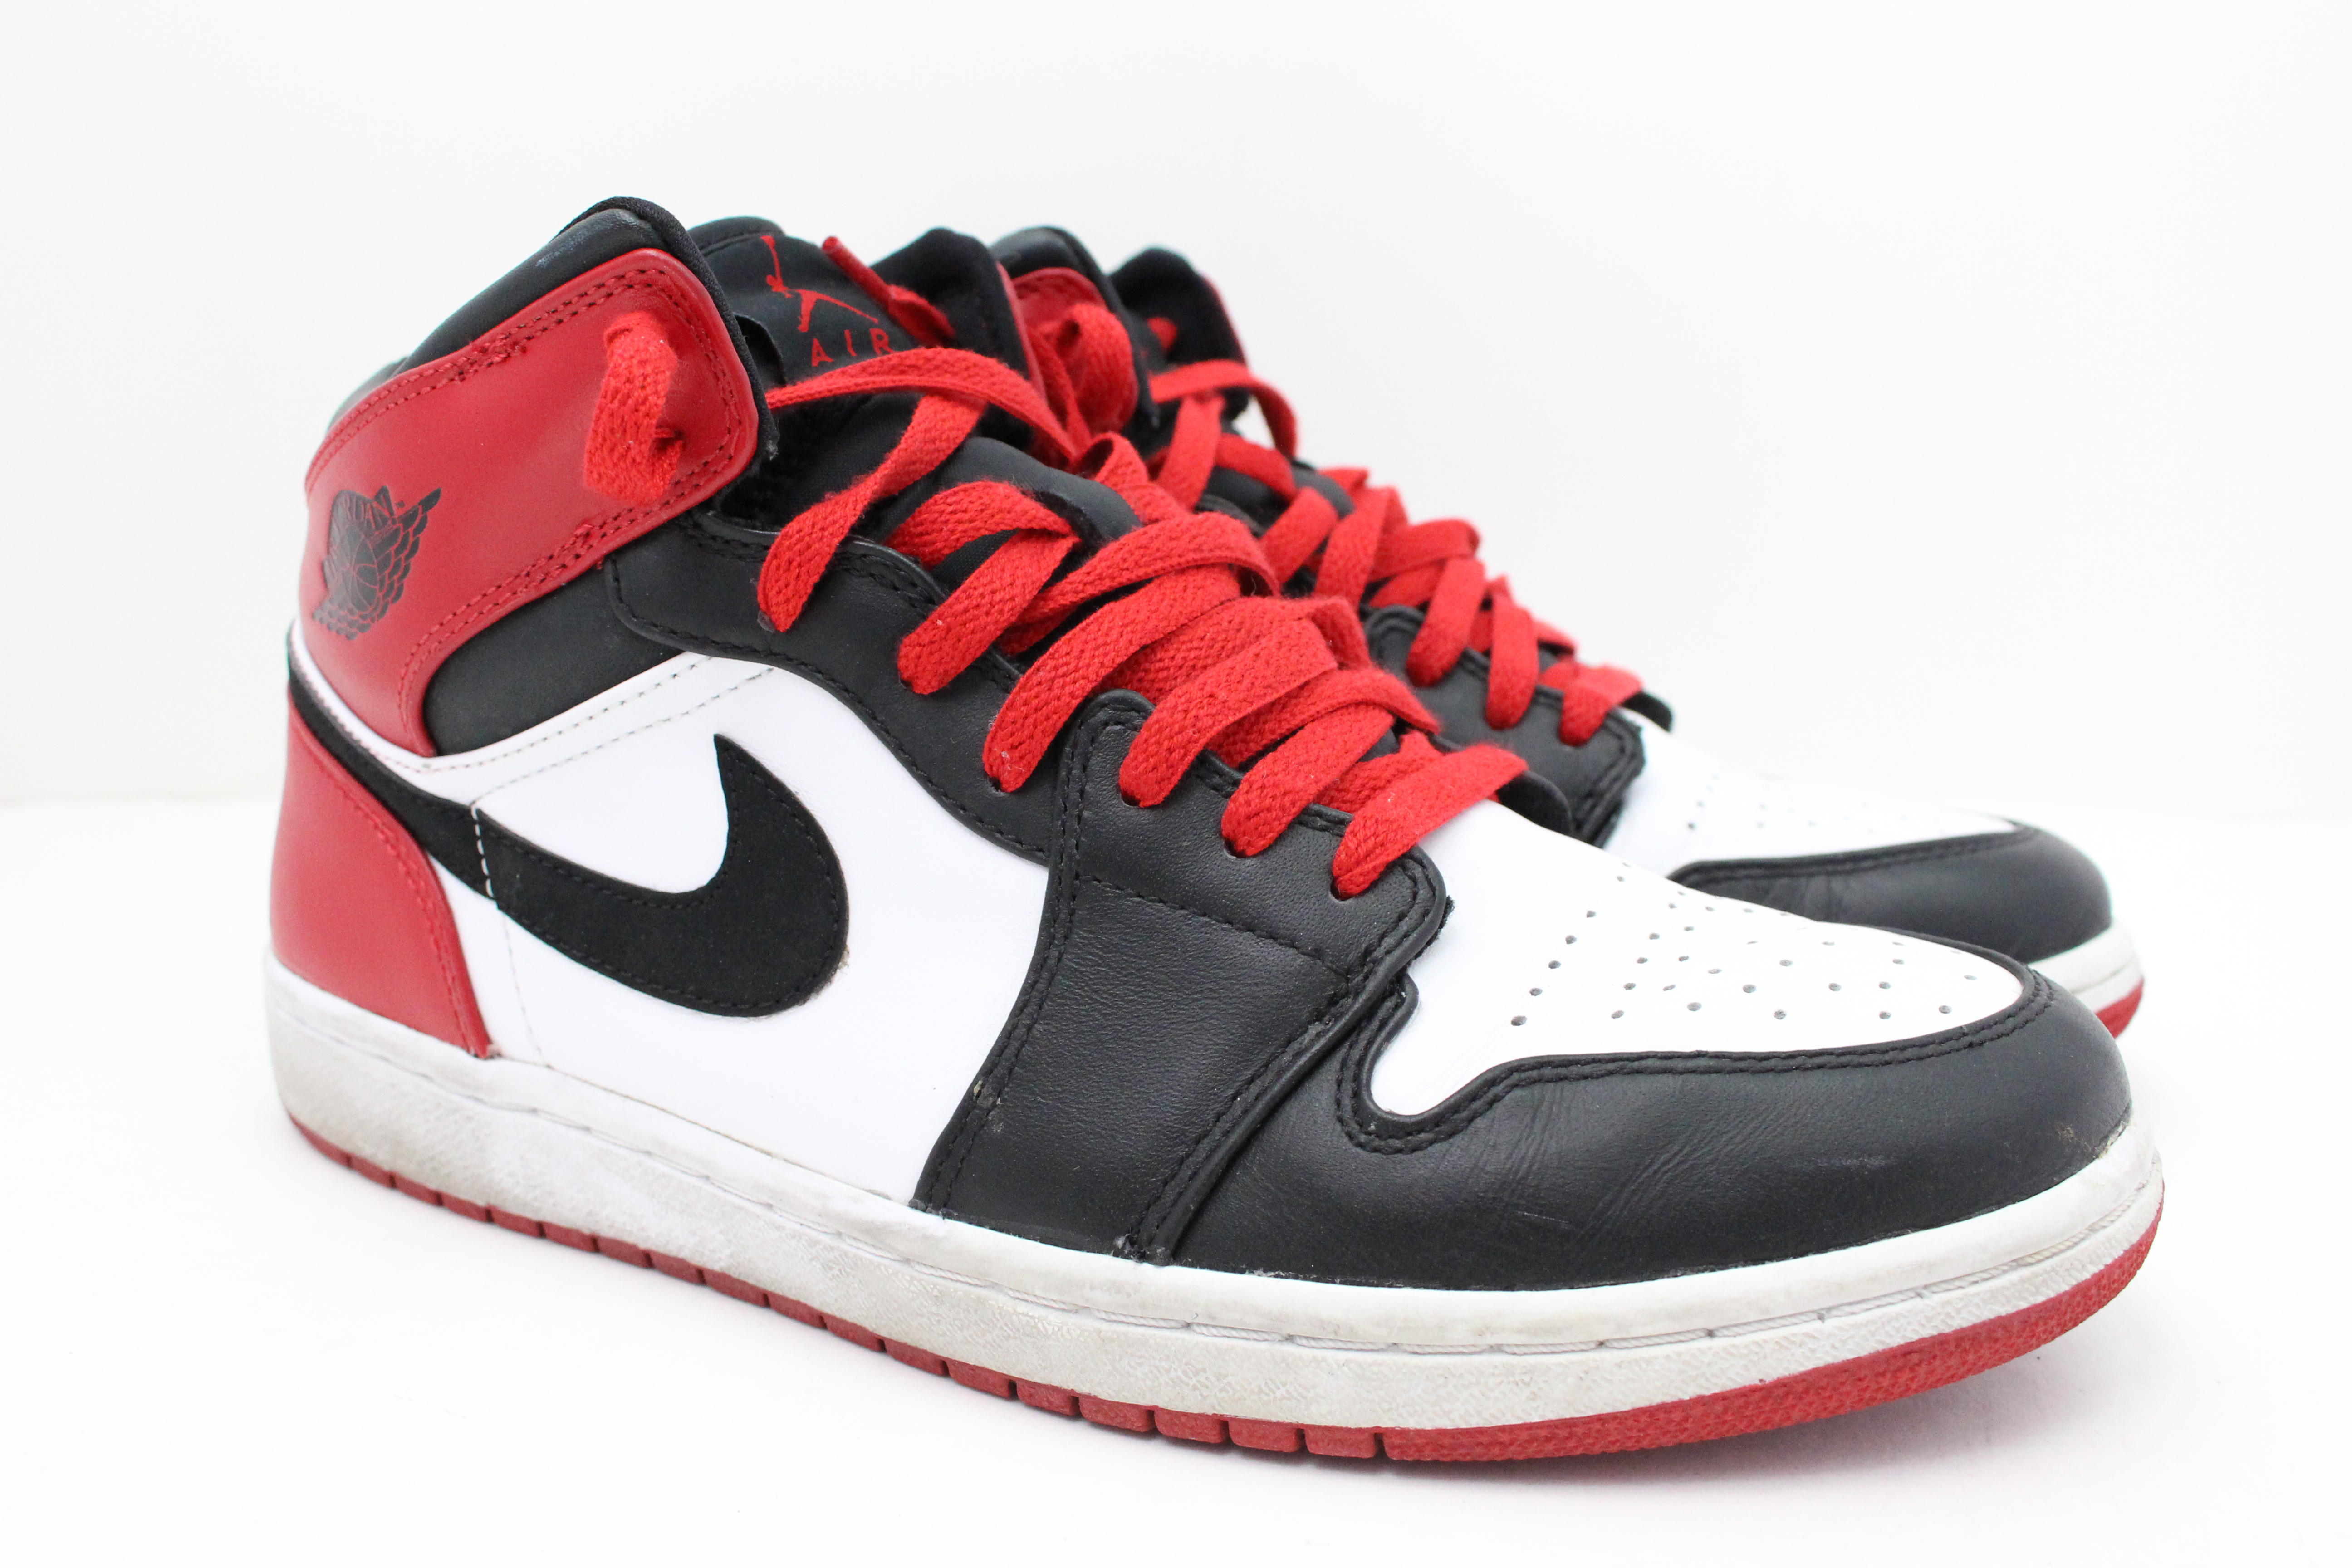 famous brand catch new styles Nike Air Retro Jordan 1 New Love Old Love Pack